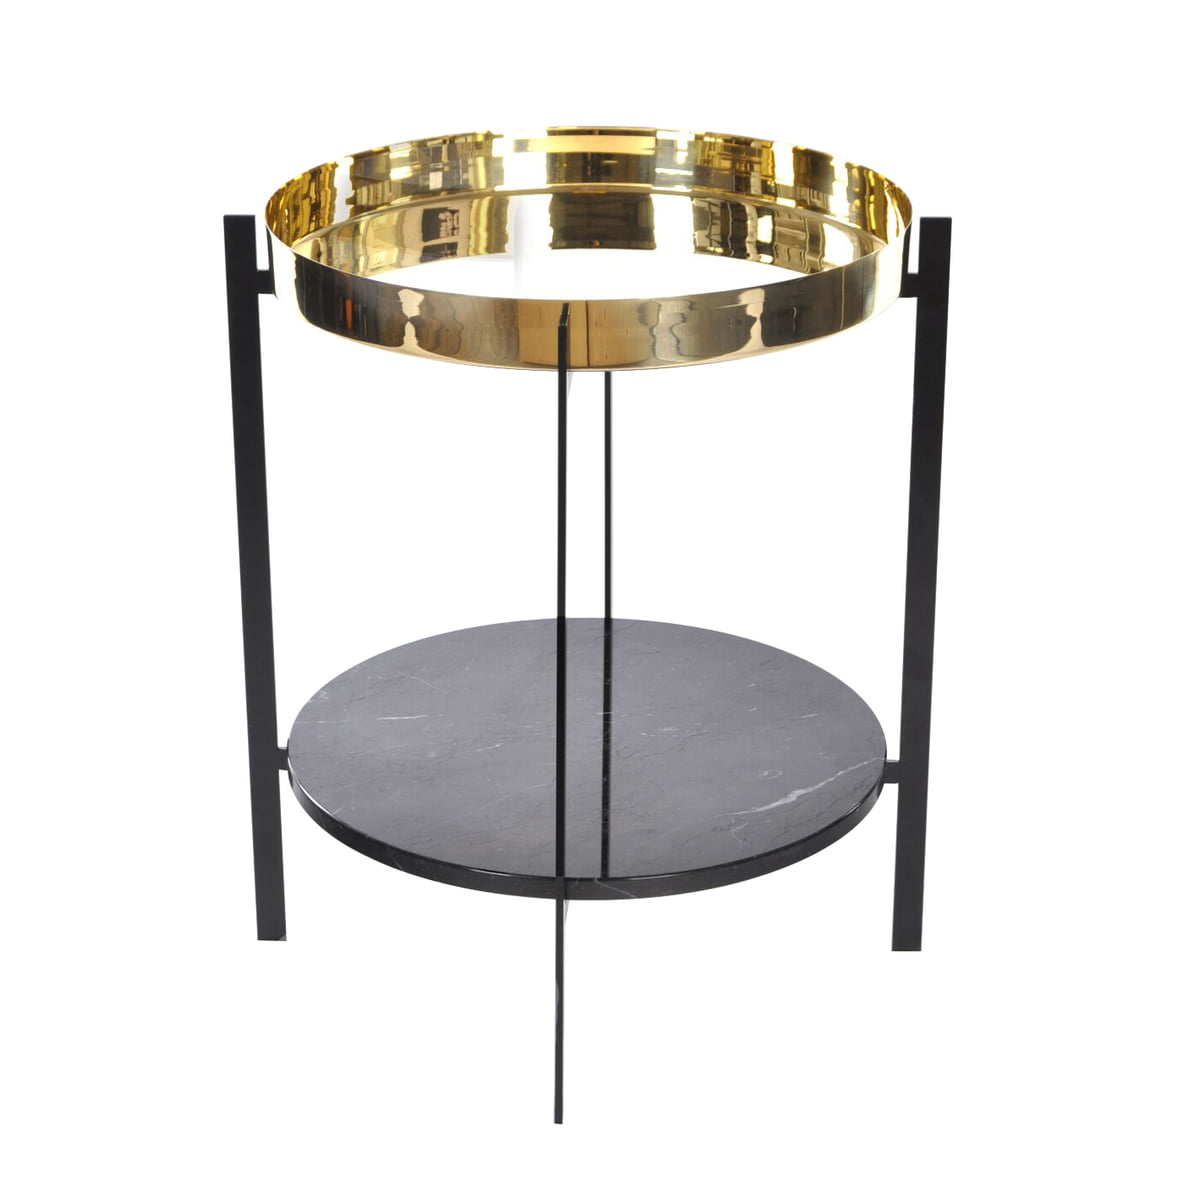 Charmant Deck Side Table By Ox Denmarq In Black Marble / Brass